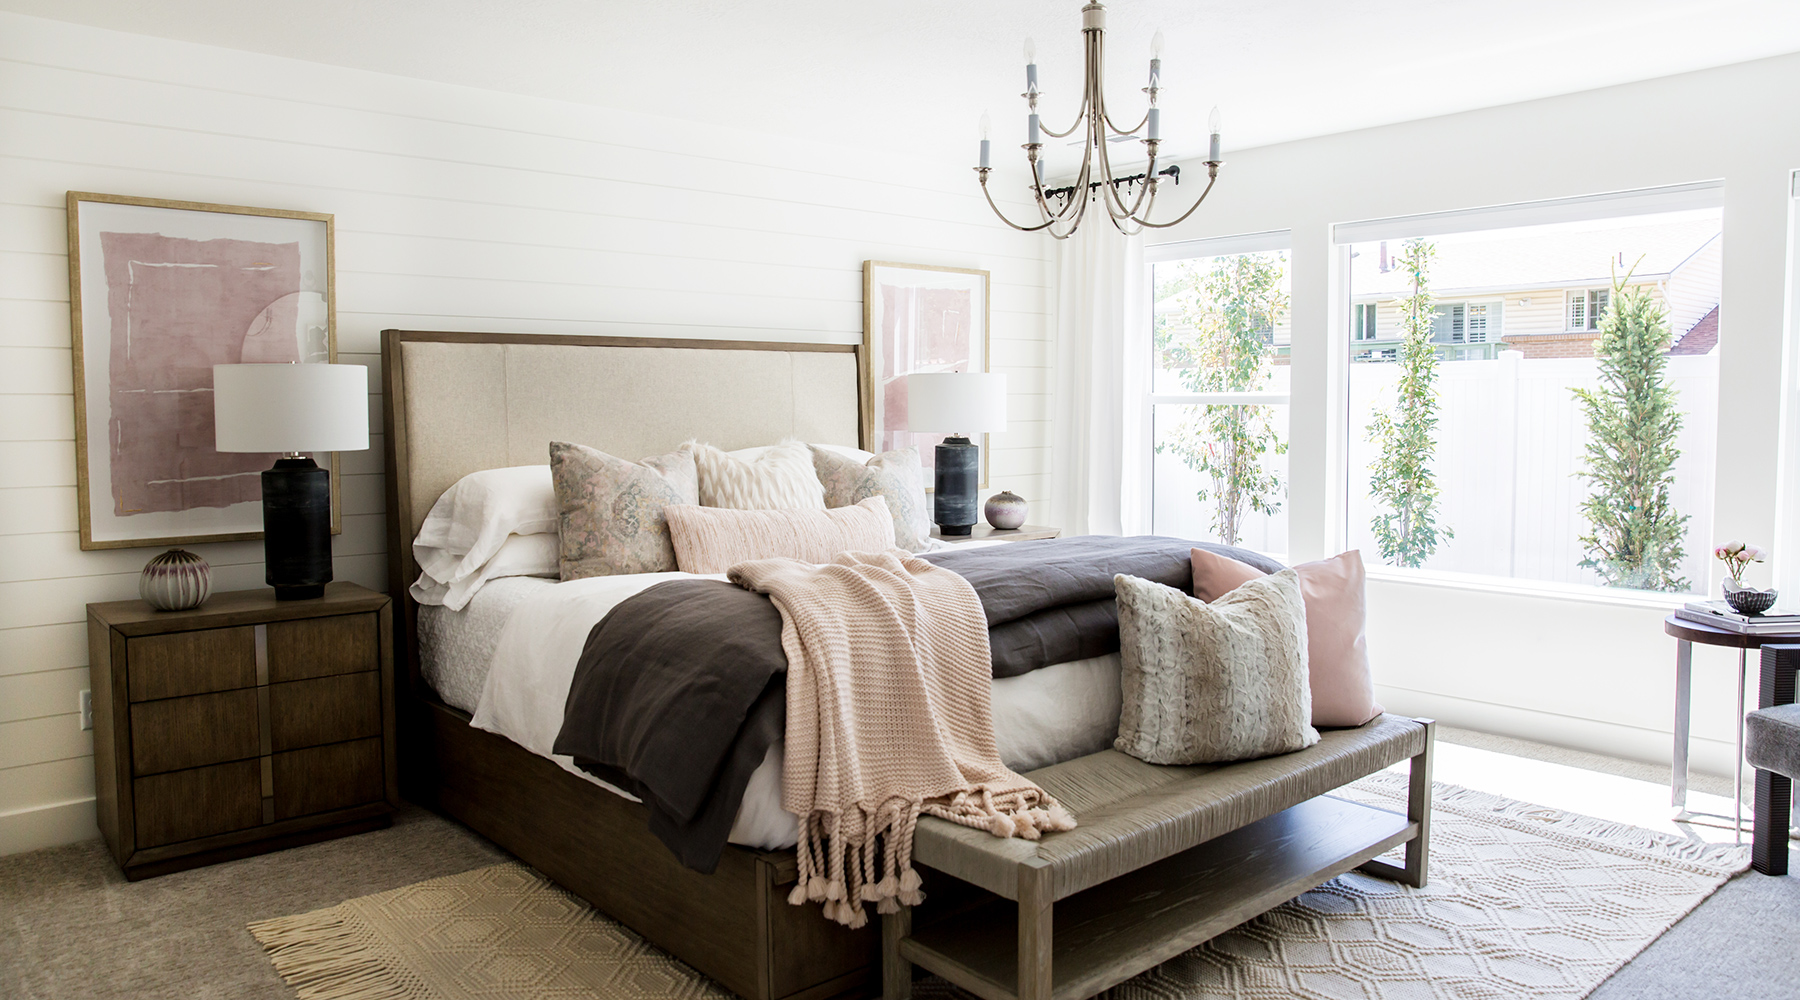 Bright Master Bedroom Interior Design & Layered Bedding by Miya Interiors